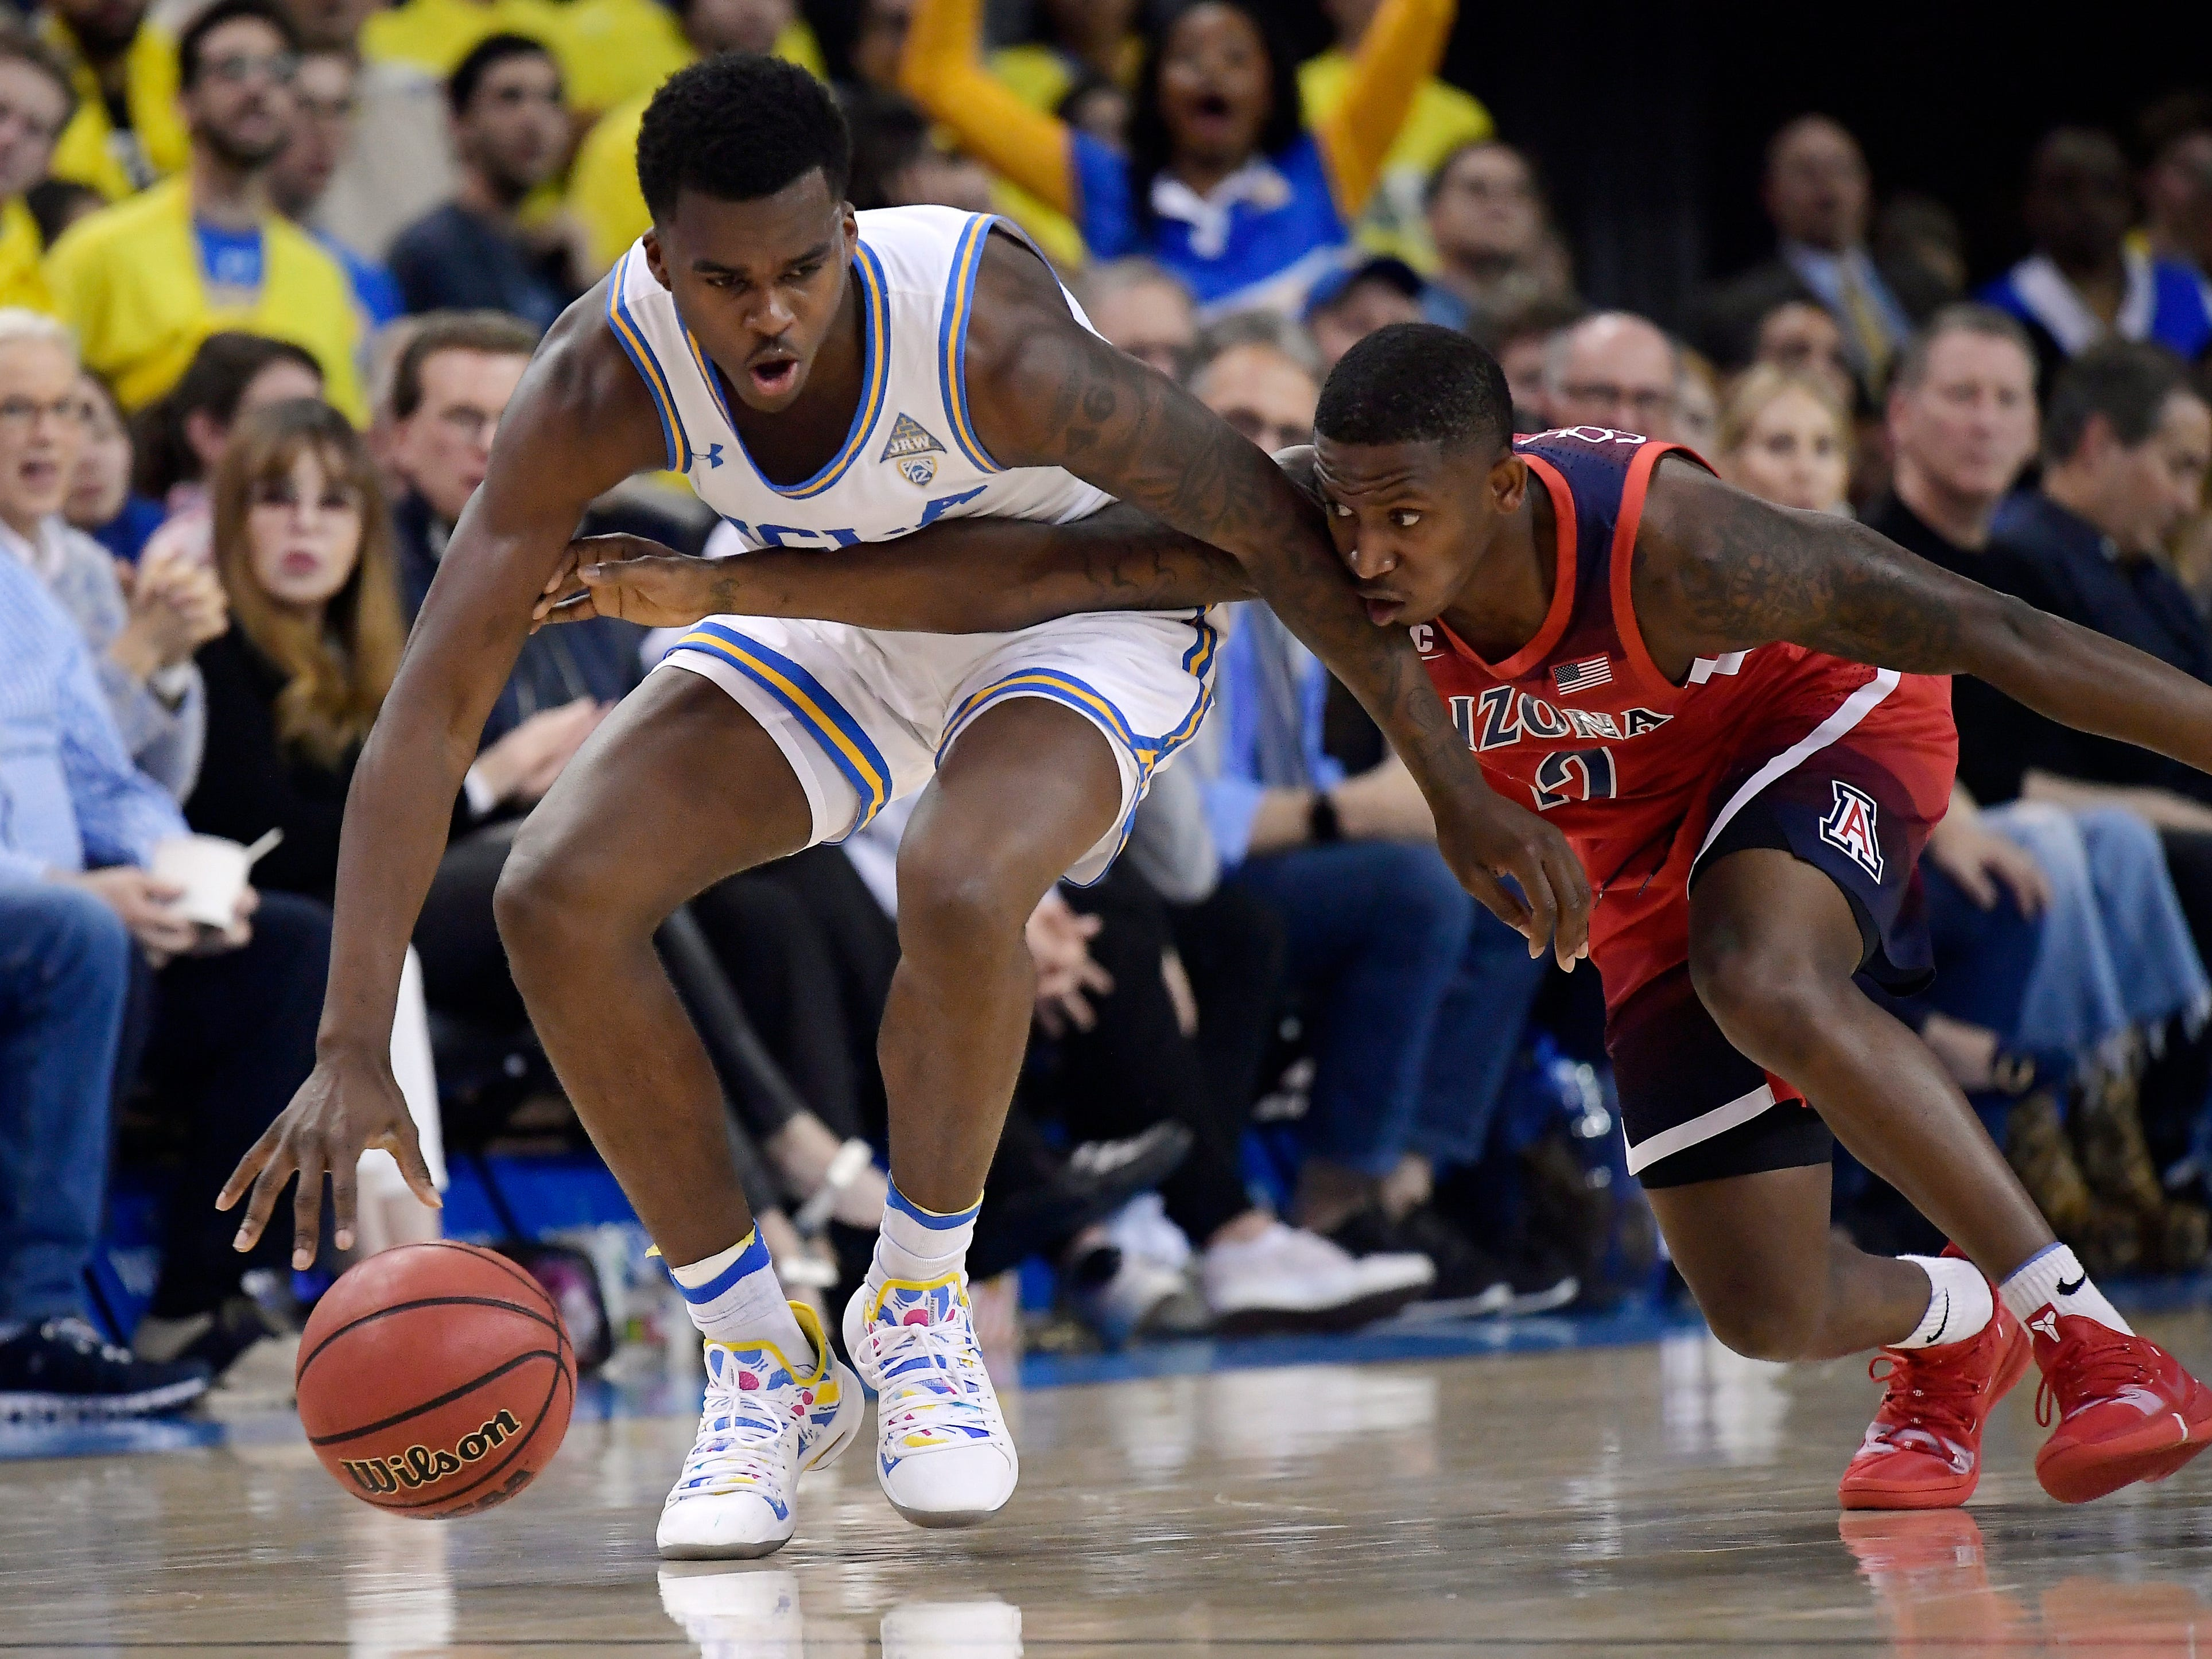 Arizona guard Justin Coleman, right, reaches for the ball against UCLA guard Kris Wilkes during the first half of an NCAA college basketball game Saturday, Jan. 26, 2019, in Los Angeles.